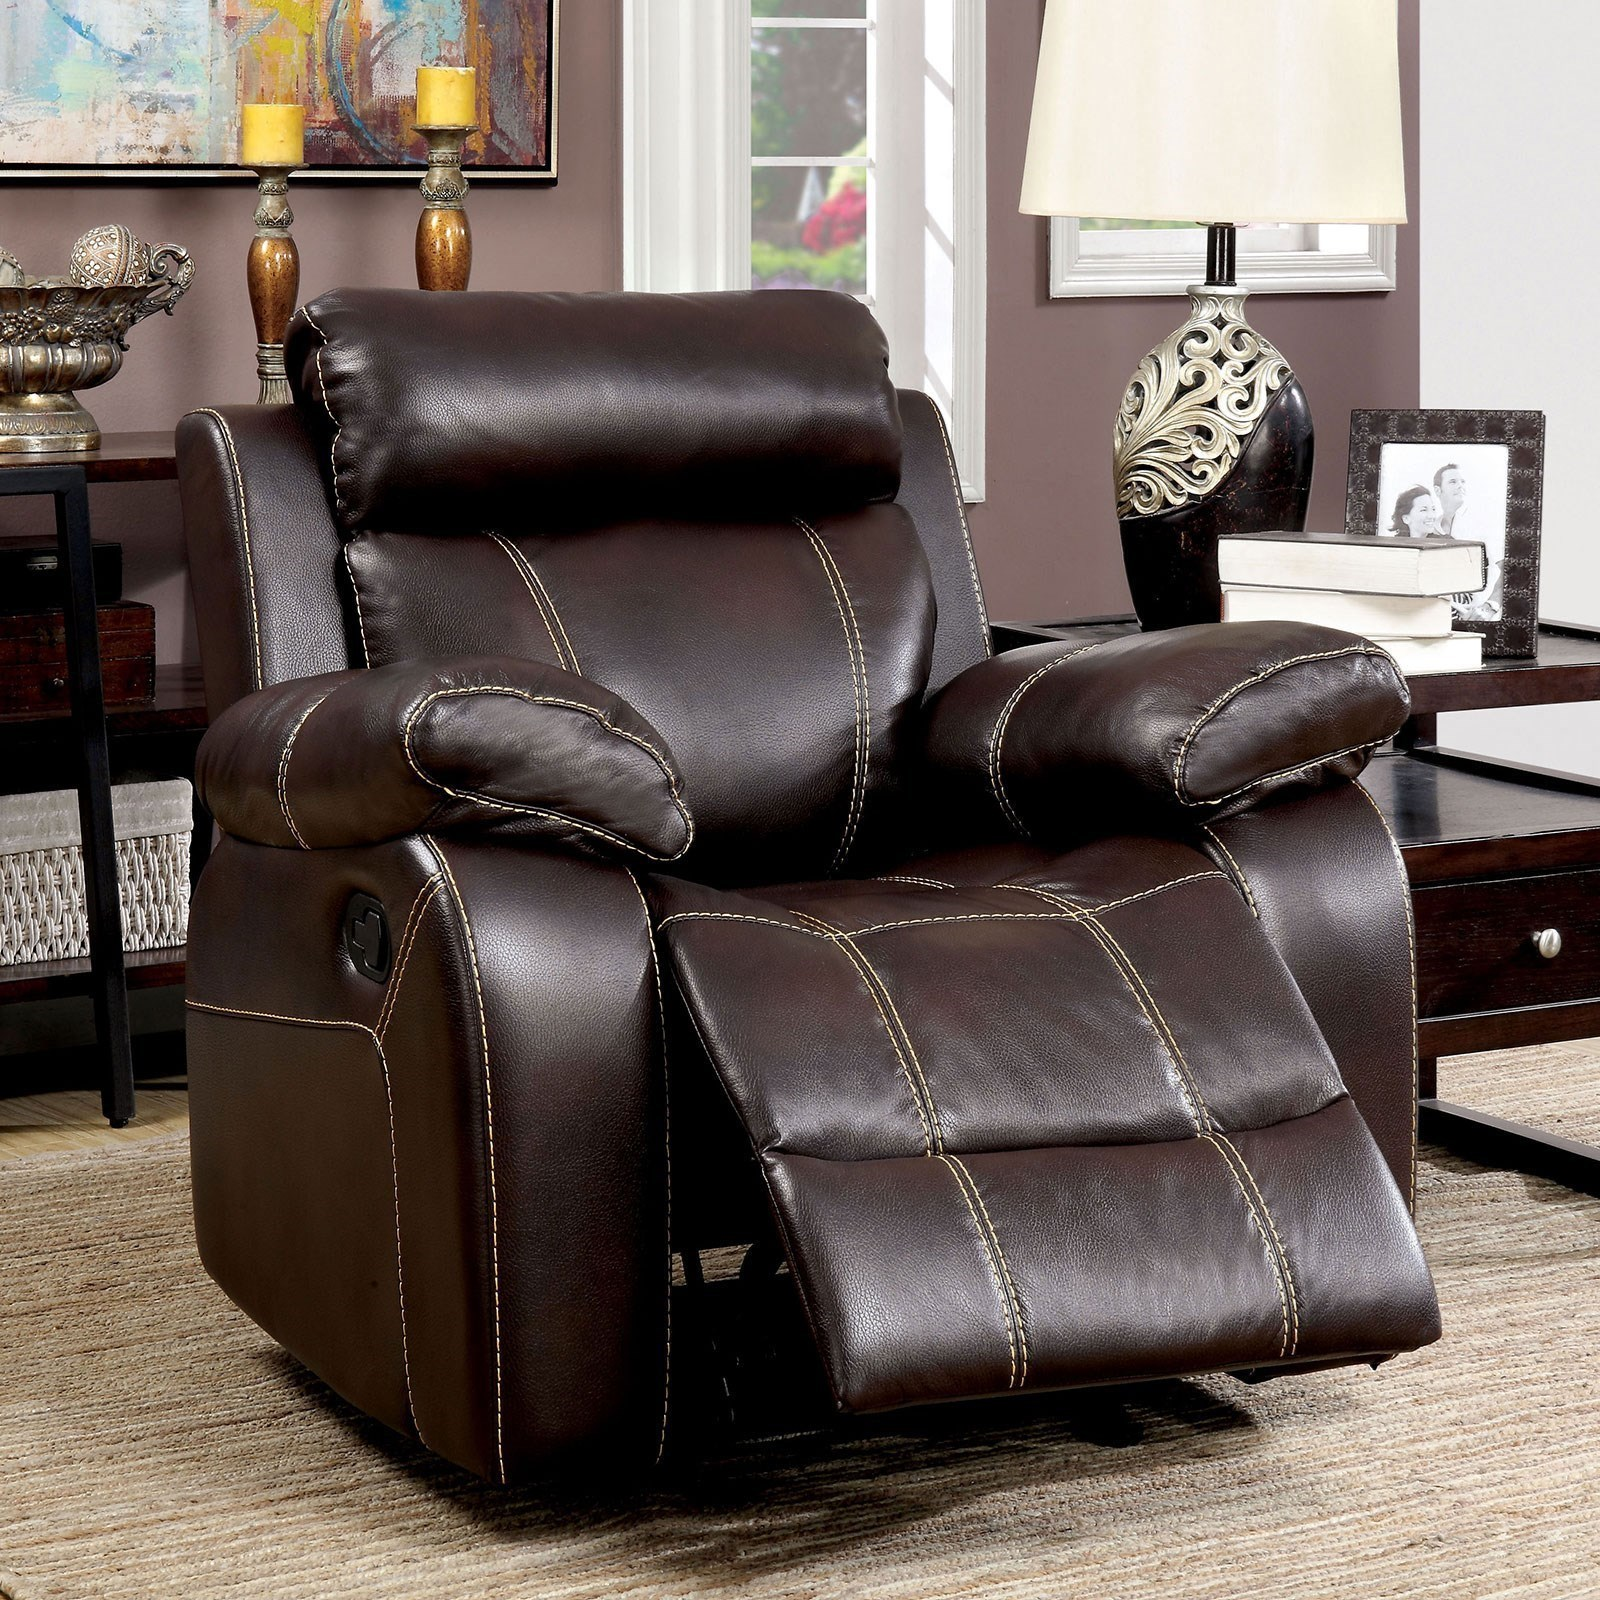 Recliner Pillow Chancellor Recliner With Pillow Arms And Contrast Stitching By Furniture Of America At Dream Home Furniture